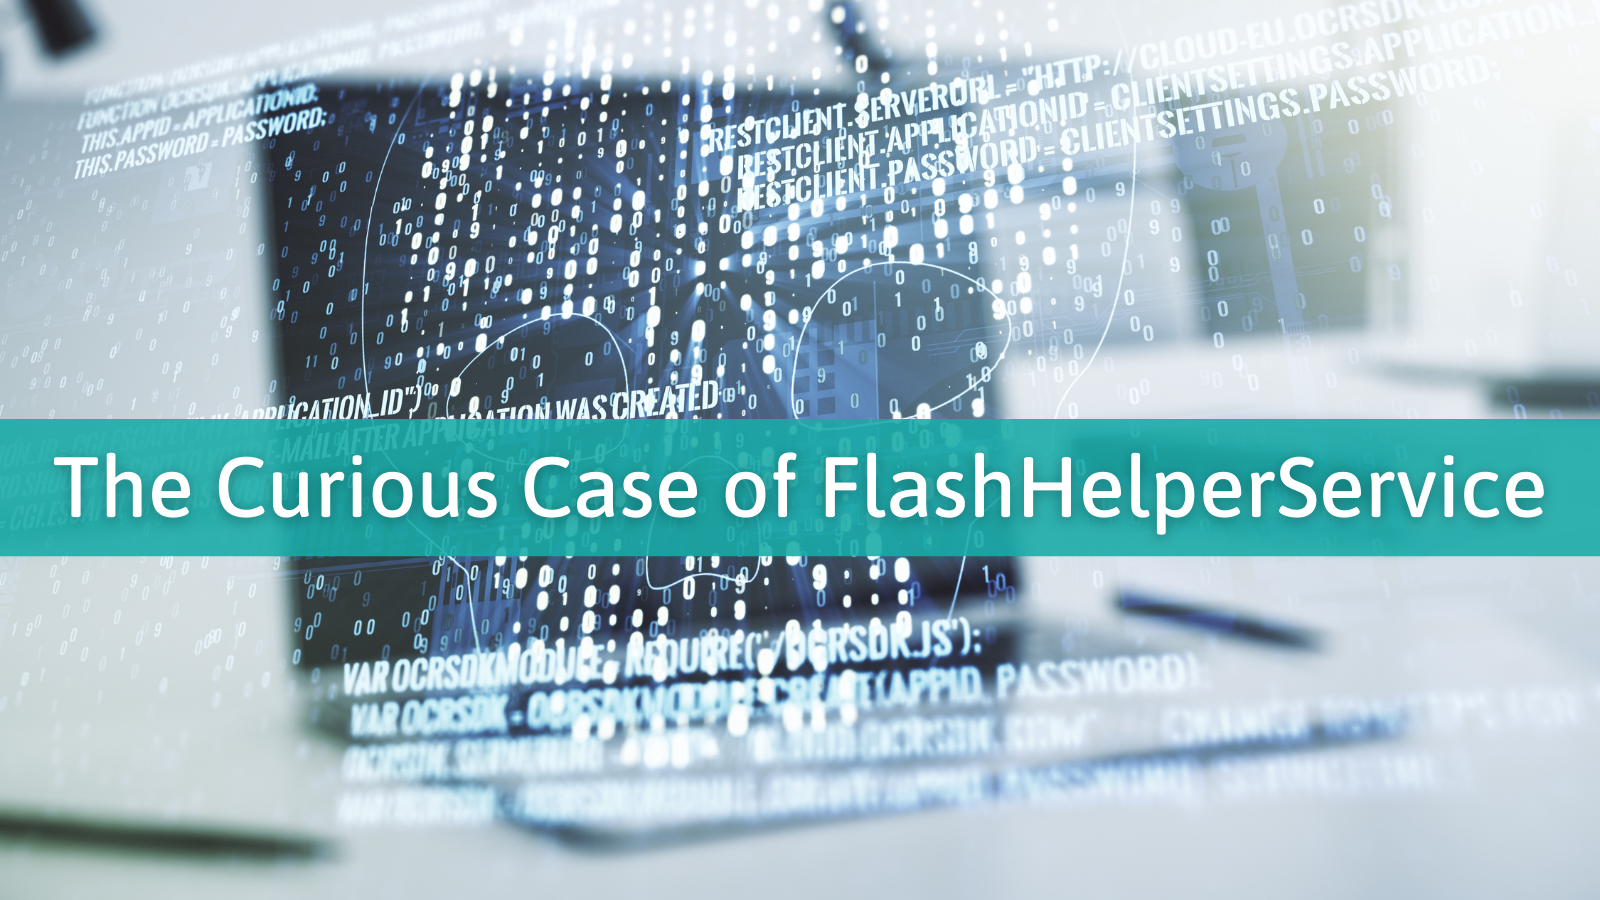 The Curious Case of FlashHelperService